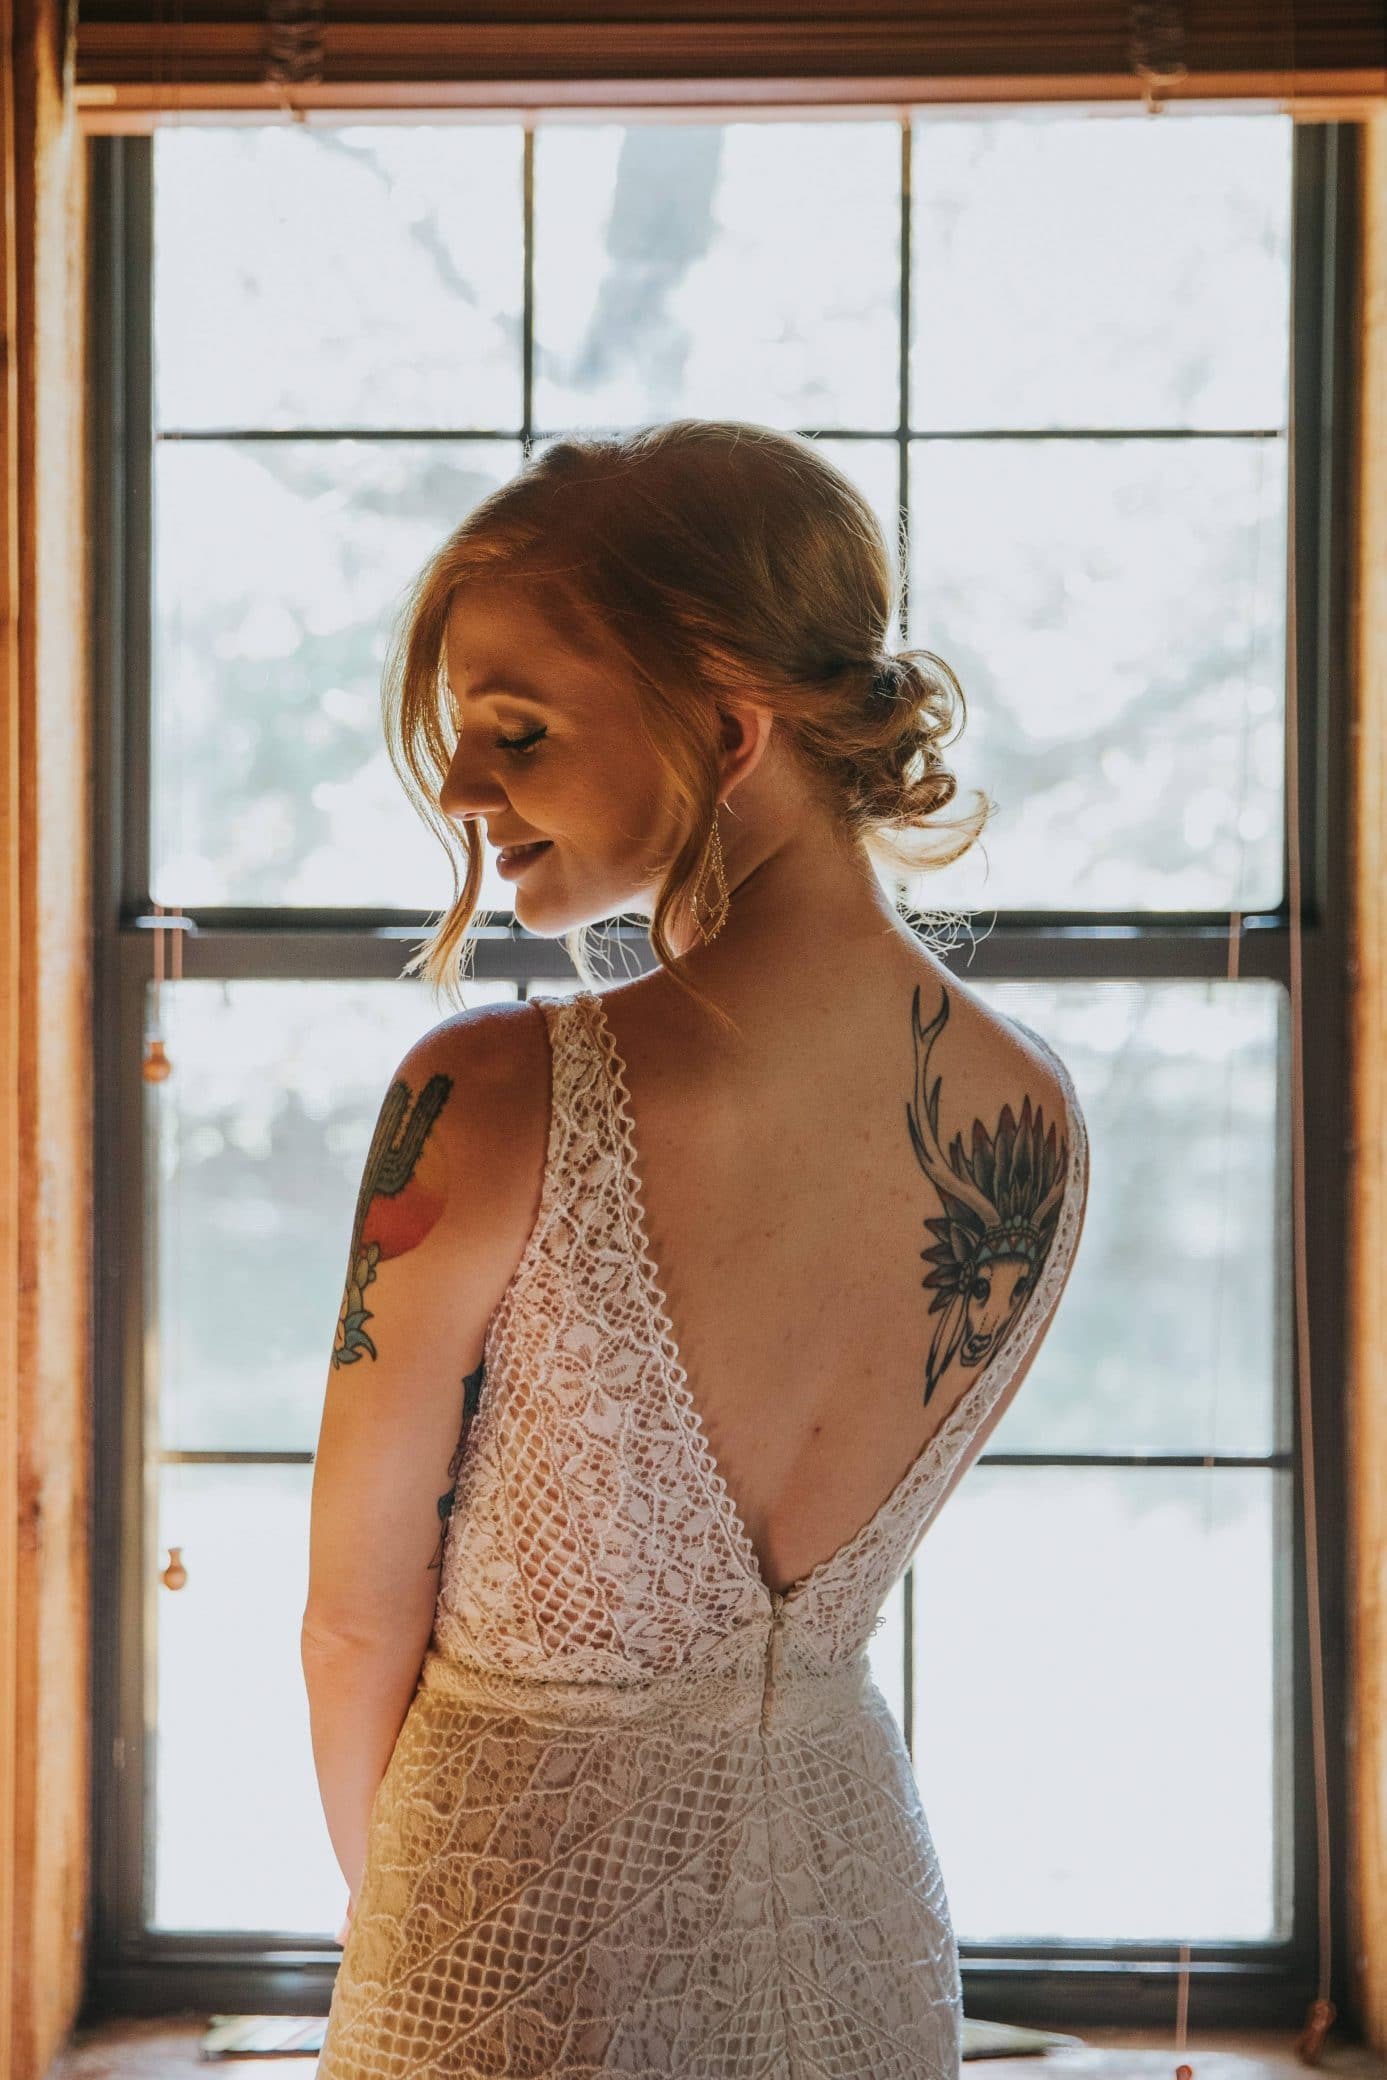 Beautiful redhead woman with tattoos wearing a bare back lace white dress looking over her shoulder